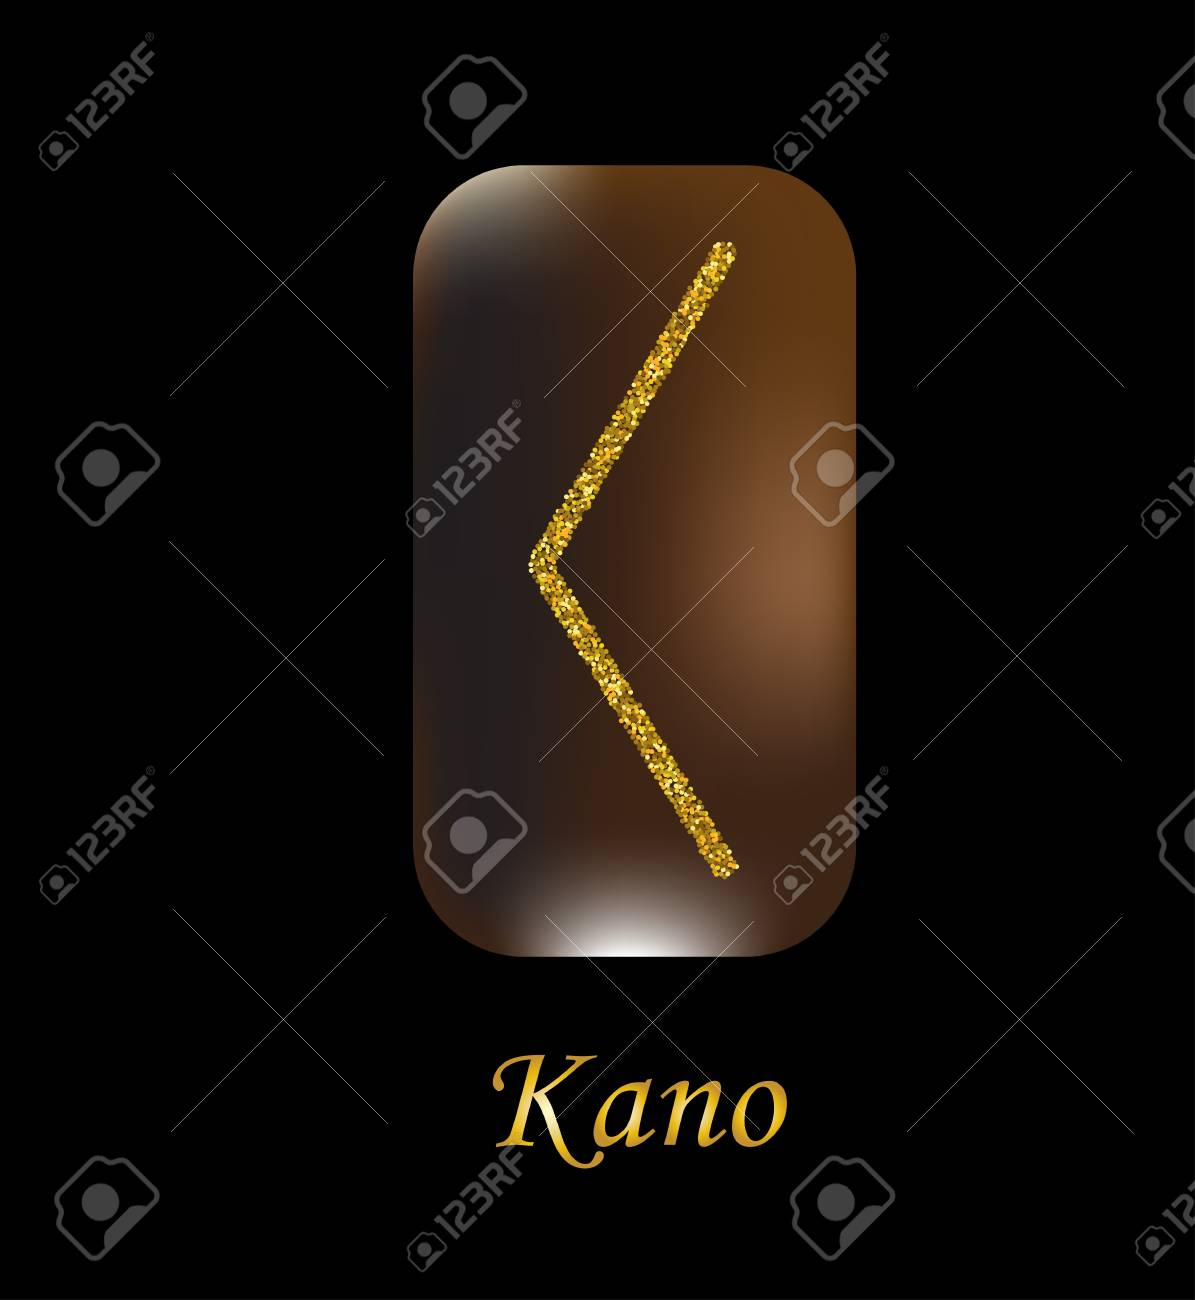 Vector illustration of kano characters, rune gold dust on a wooden